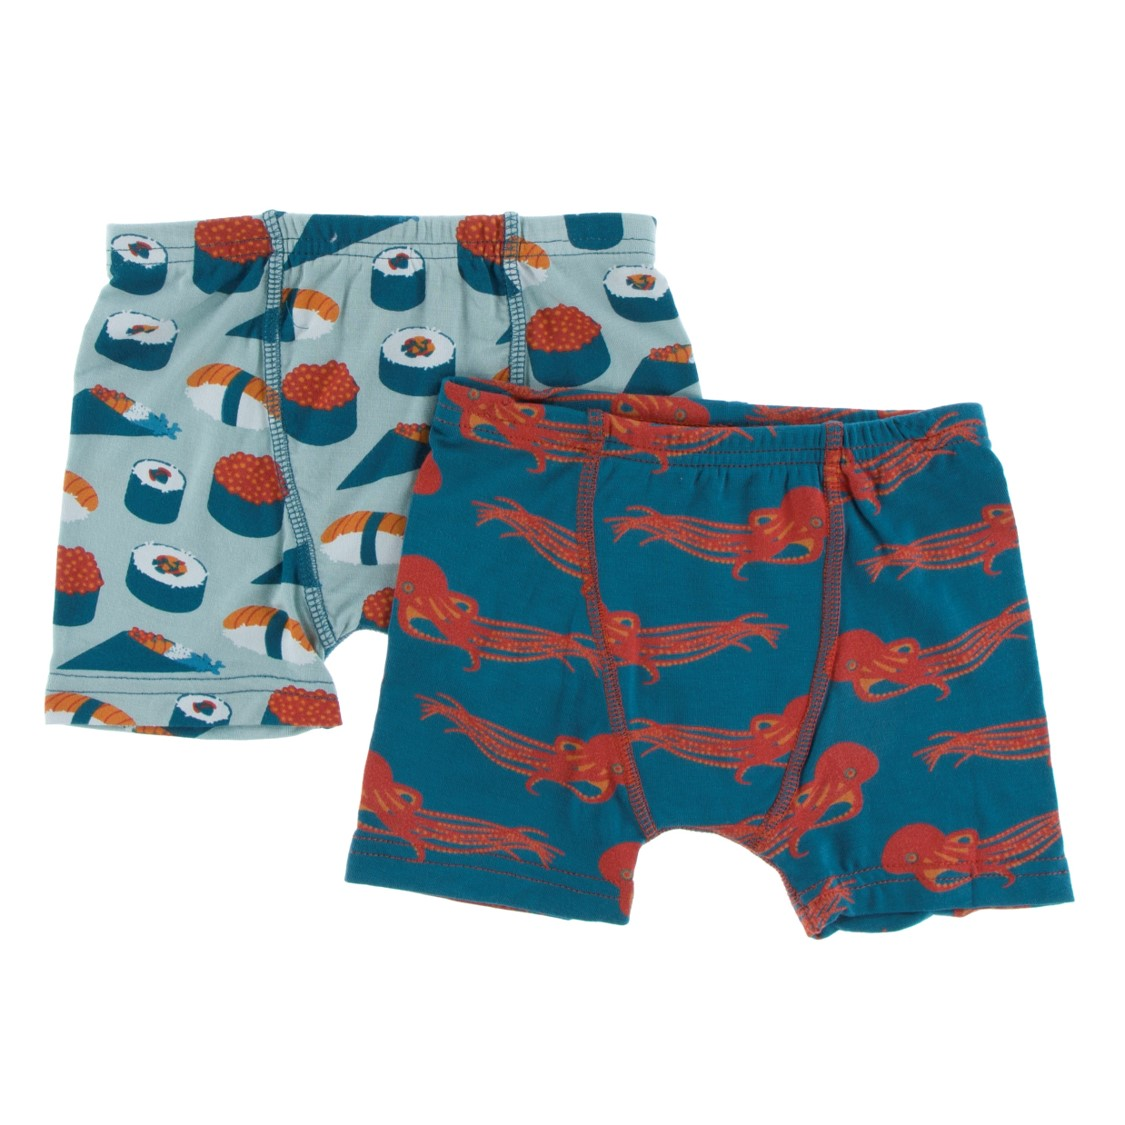 Kickee Pants - Fall 3 2018  - Boxer Brief Set - Jade Sushi & Oasis Octopus